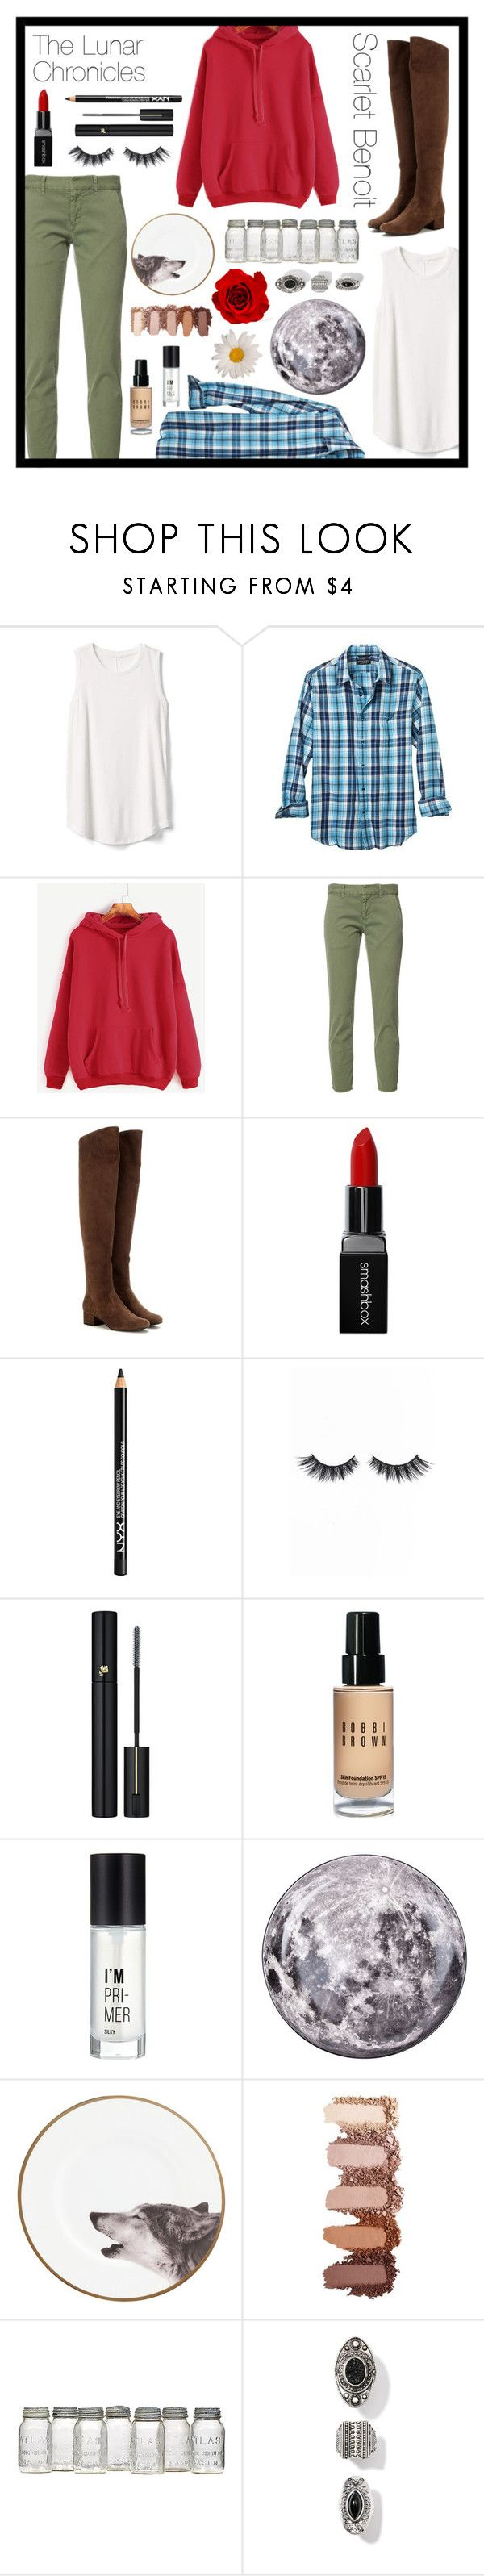 """Scarlet Benoit"" by geekydesigner ❤ liked on Polyvore featuring Gap, Banana Republic, Nili Lotan, Yves Saint Laurent, Smashbox, NYX, Violet Voss, Lancôme, Bobbi Brown Cosmetics and Charlotte Russe"